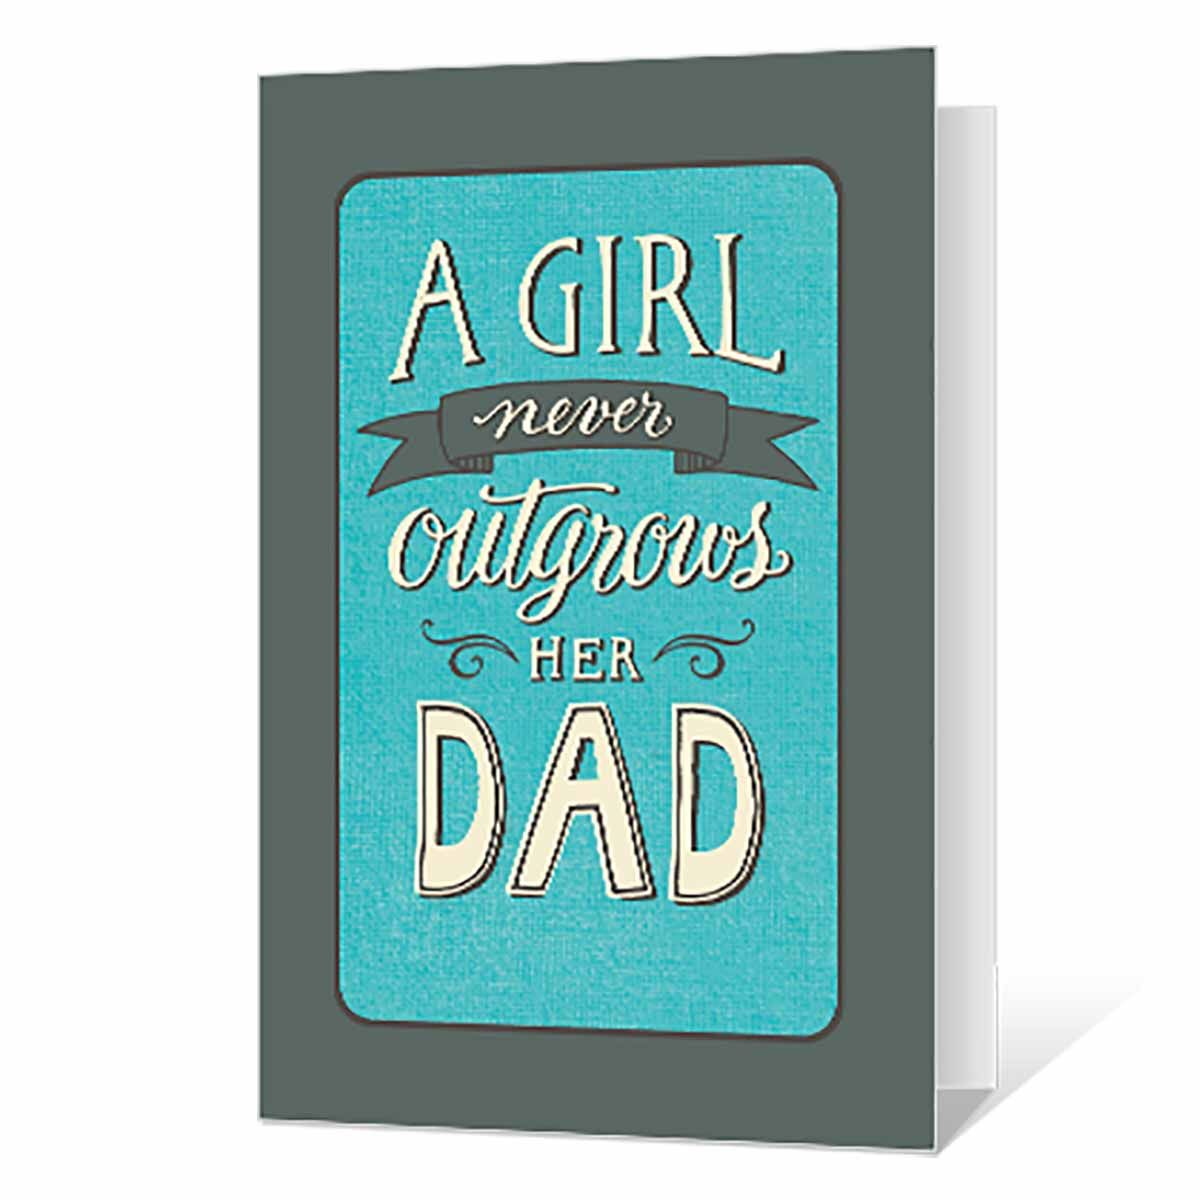 image about Printable Fathers Day Cards From Wife referred to as 25 Printable Fathers Working day Playing cards - Totally free Printable Playing cards For